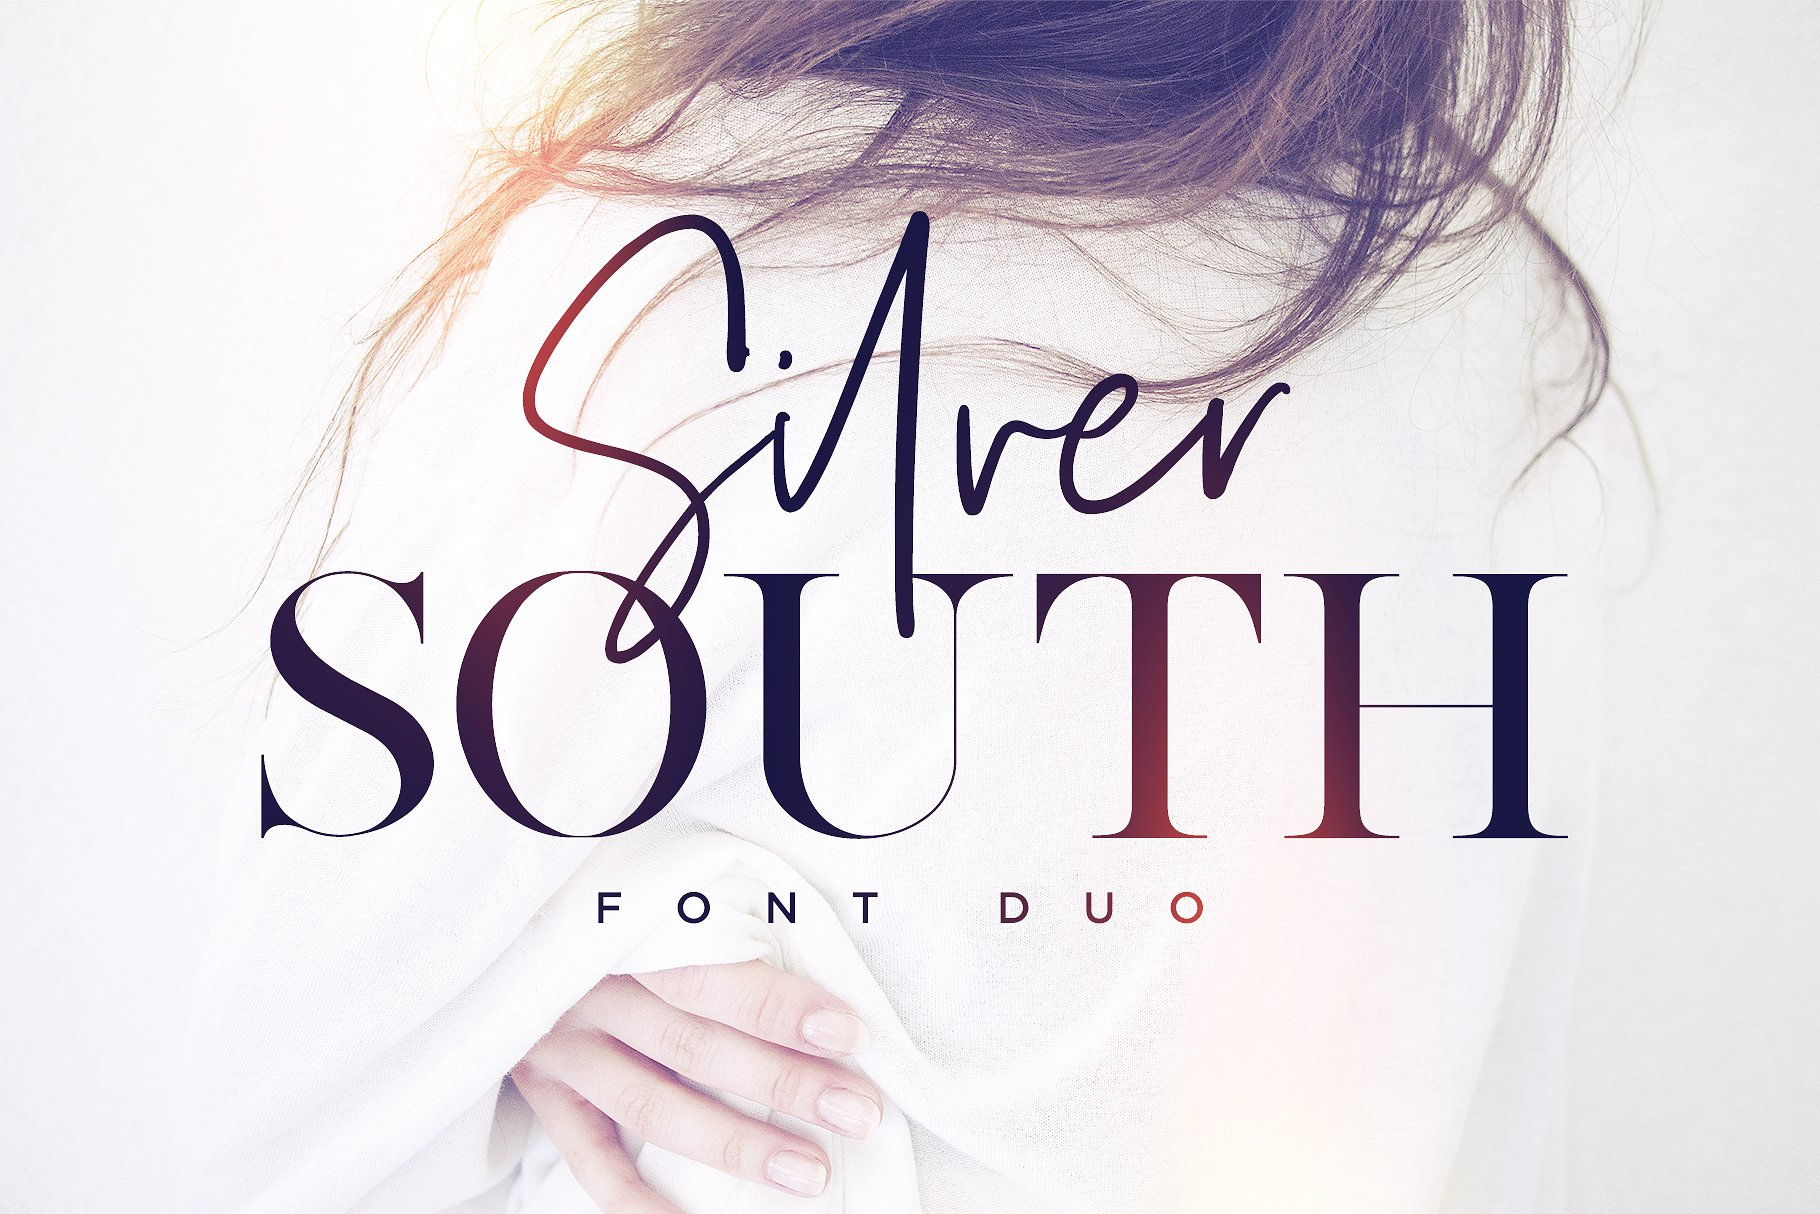 Silver South (pair of script and serif fonts) stock photo collection